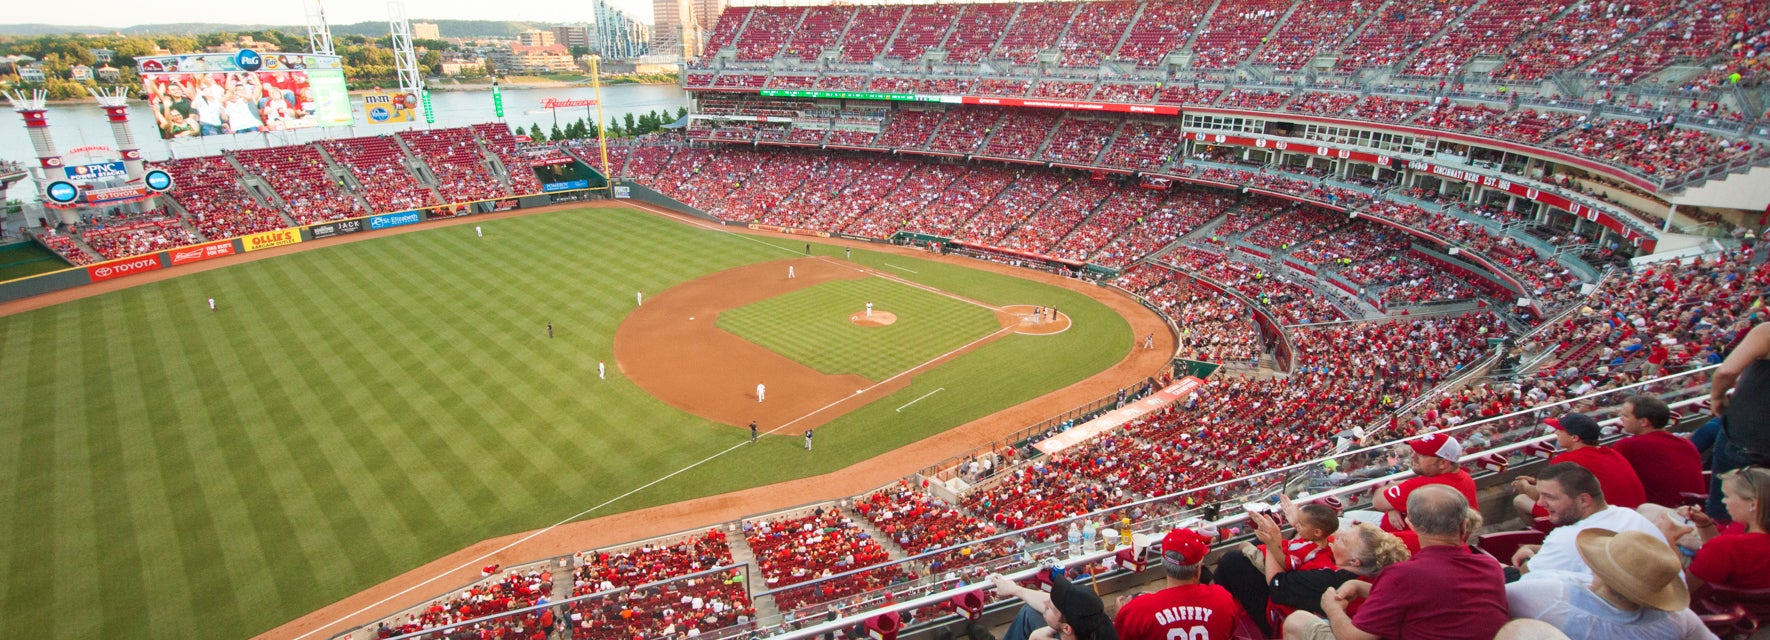 Seat view from View Level Line